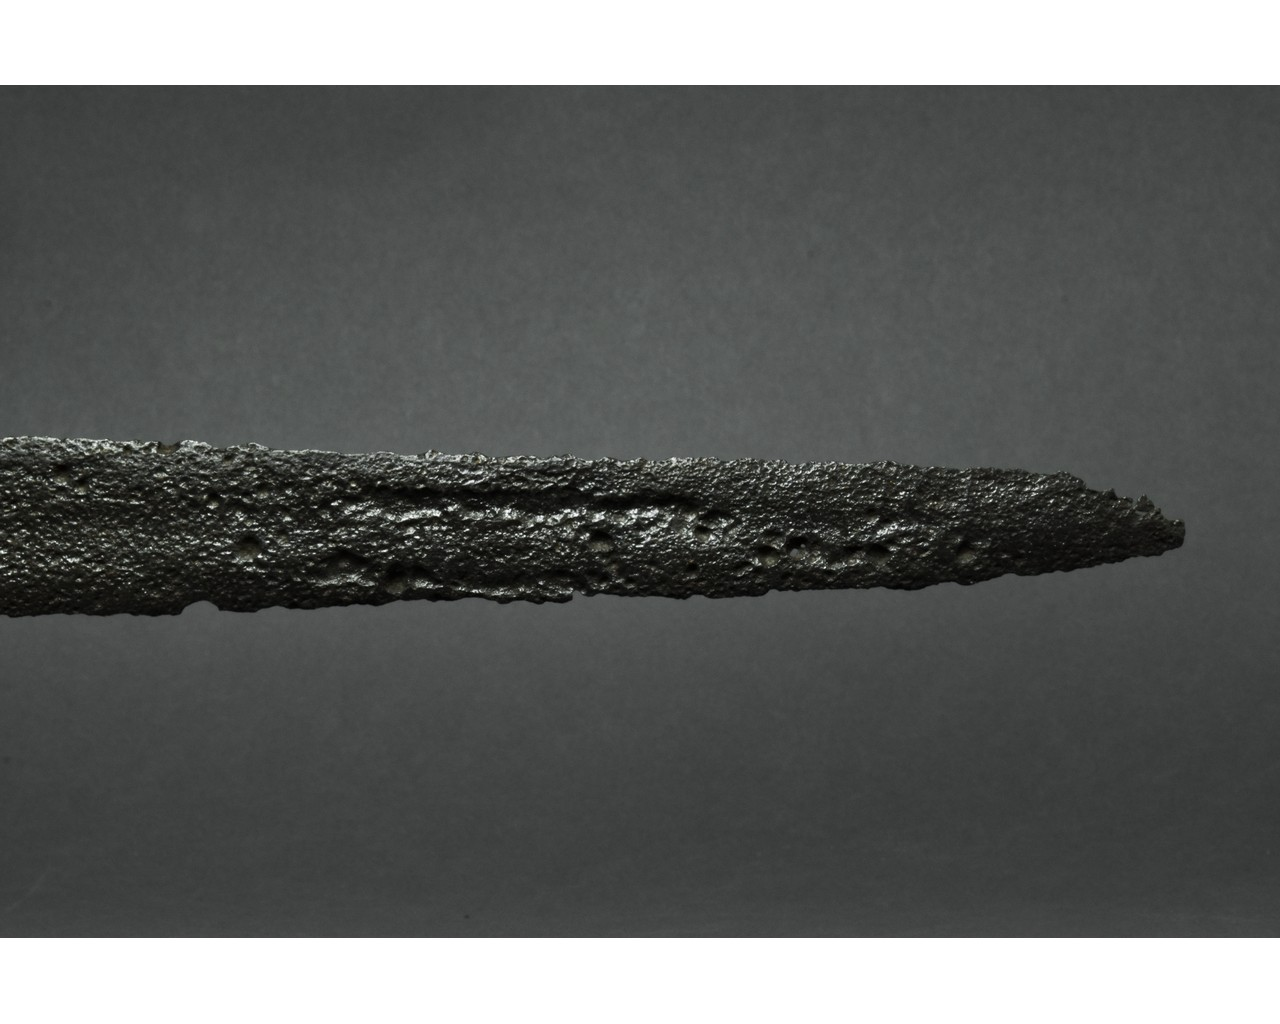 MEDIEVAL IRON SWORD WITH INLAID CROSS - Image 5 of 6